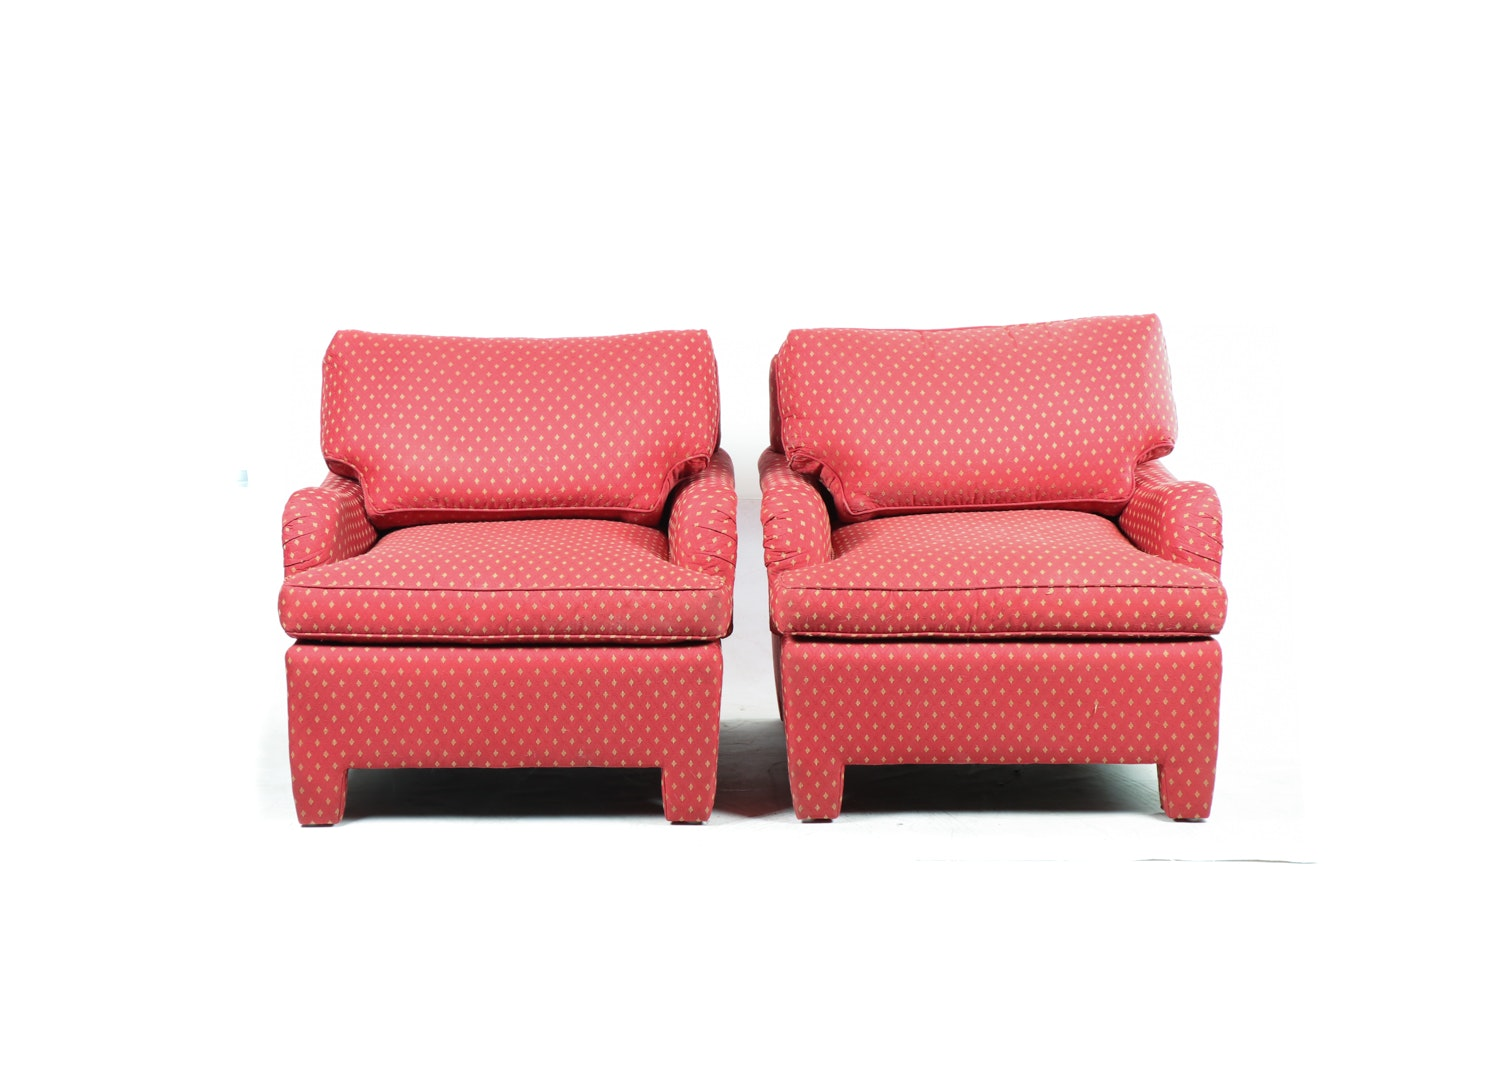 Contemporary Pair of Red Upholstered Armchairs